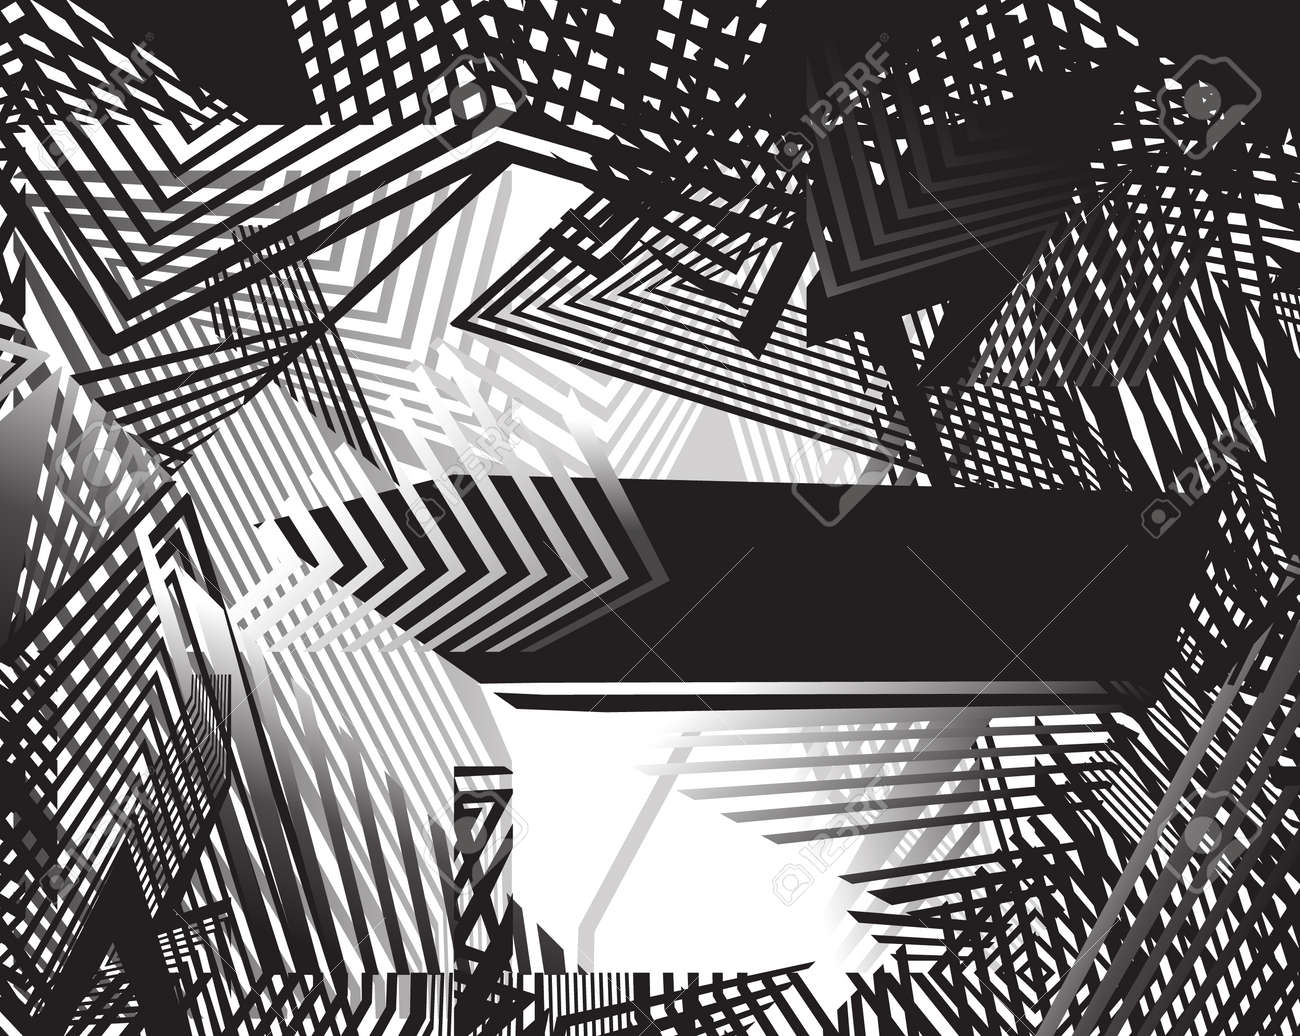 Line Design Op Art : Black and white op art visualizes energy oscillations